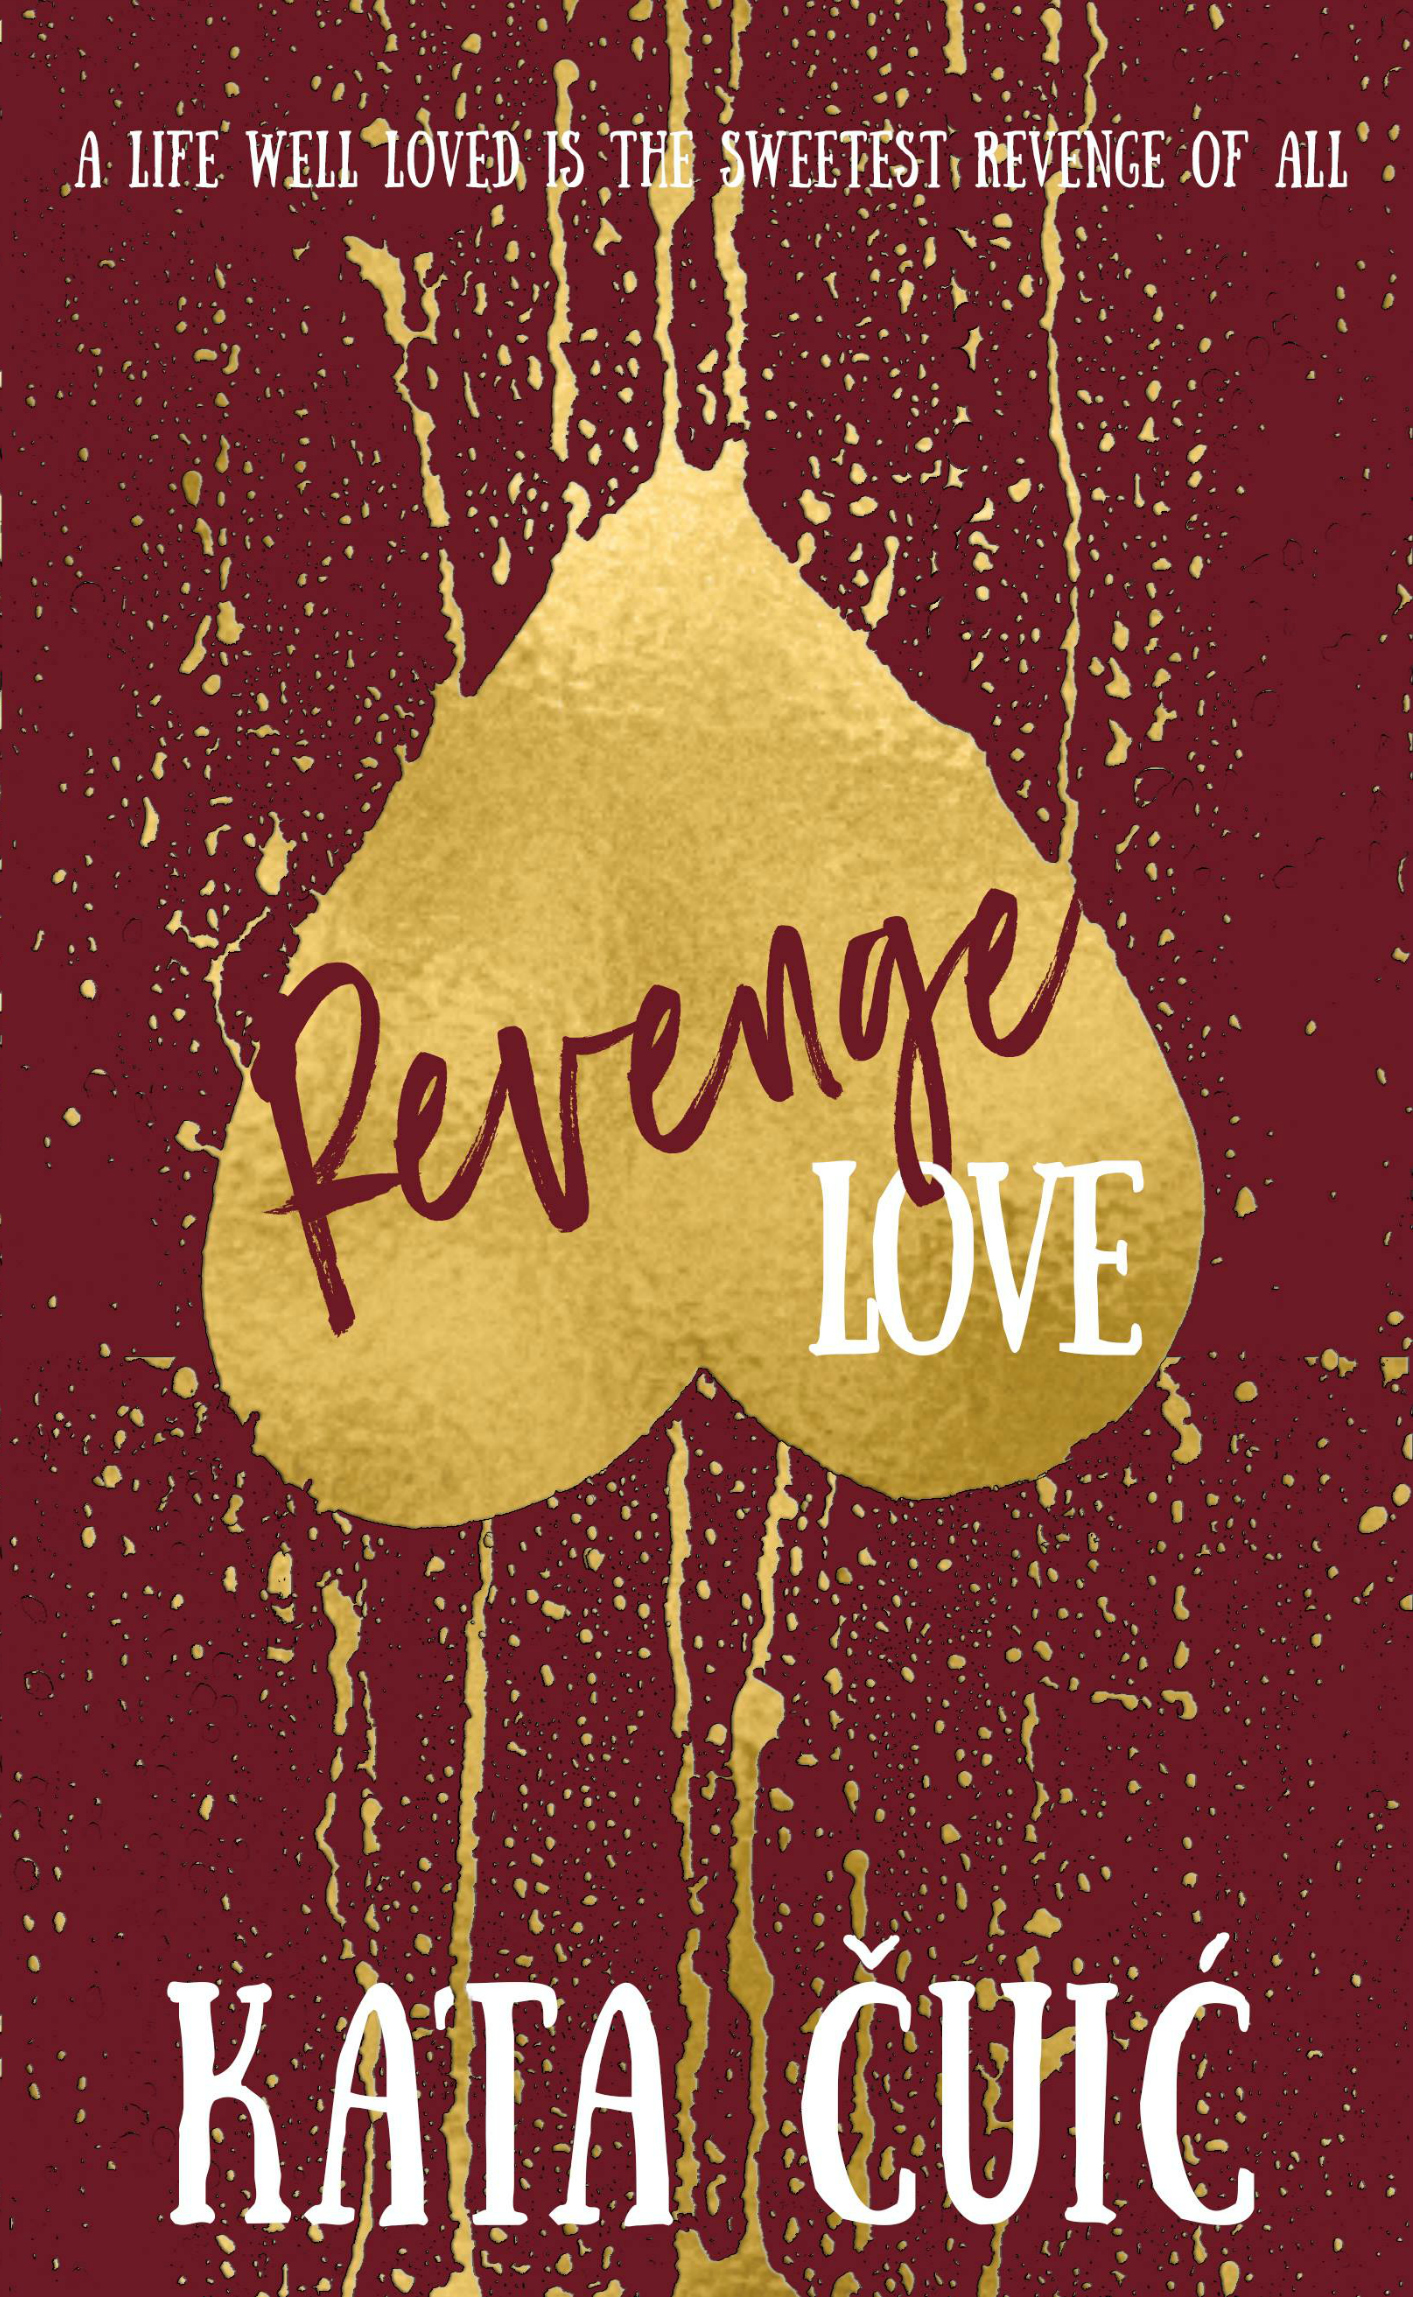 Revenge Love by Kata Cuic [Cover Reveal]